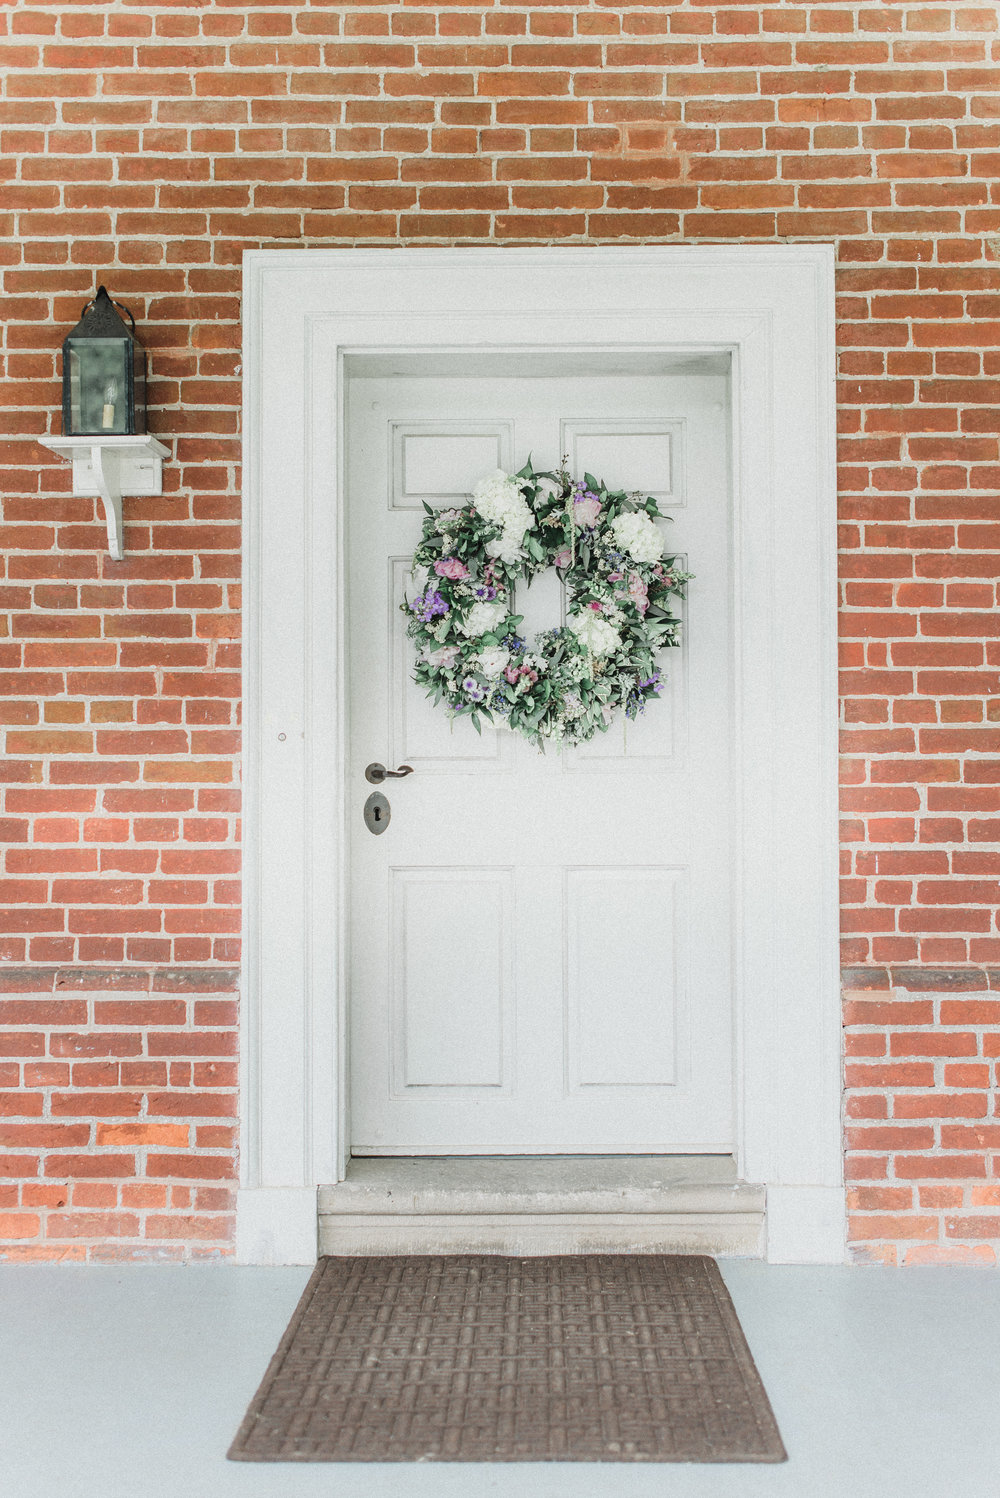 Ceremony detail: Floral wreath